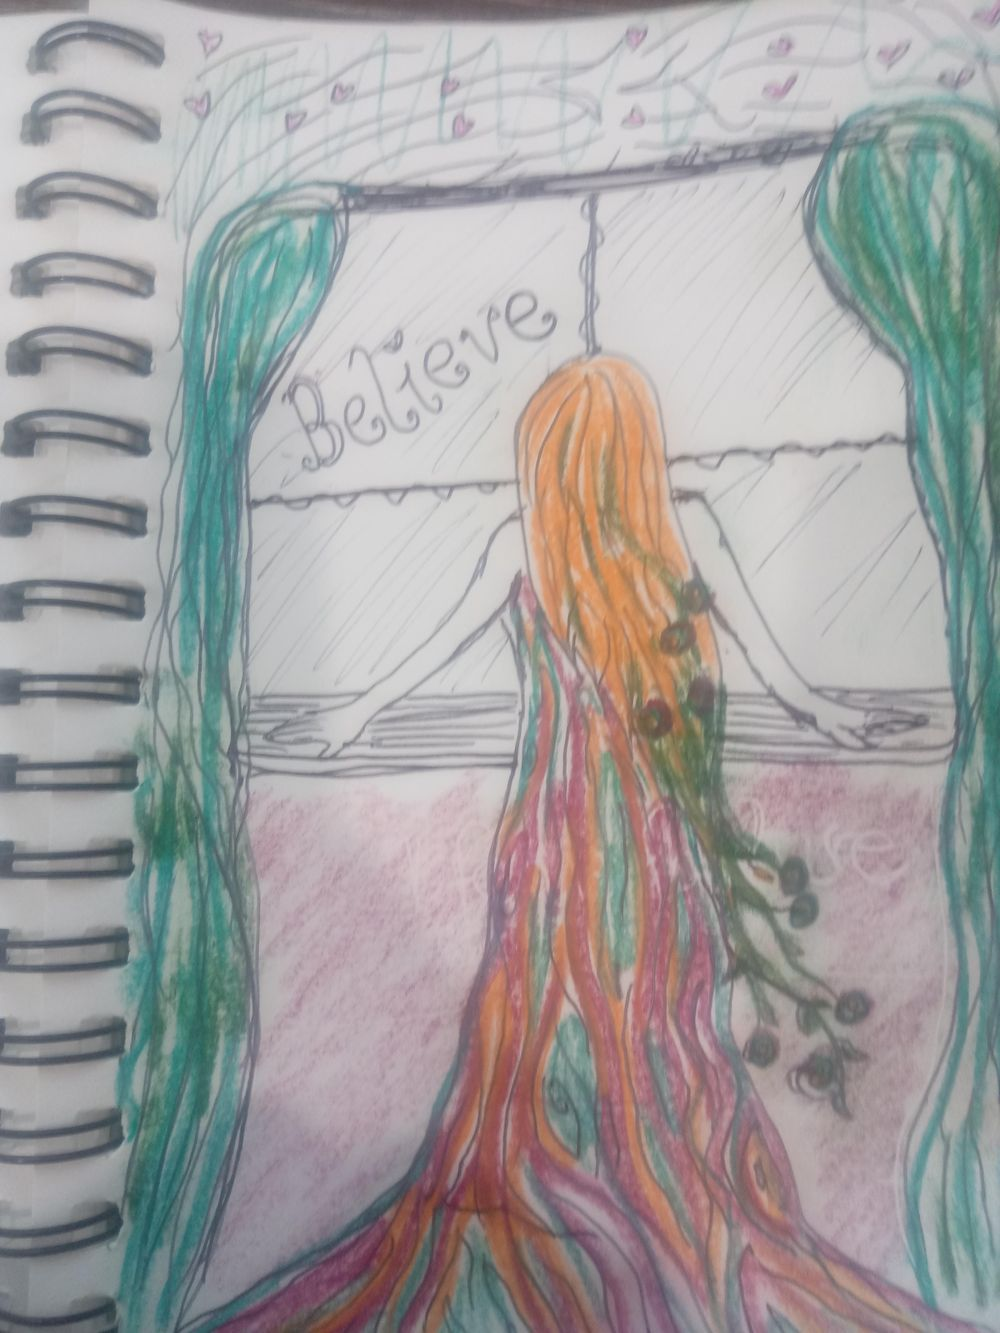 Visual Journaling drawing your feelings. - image 2 - student project